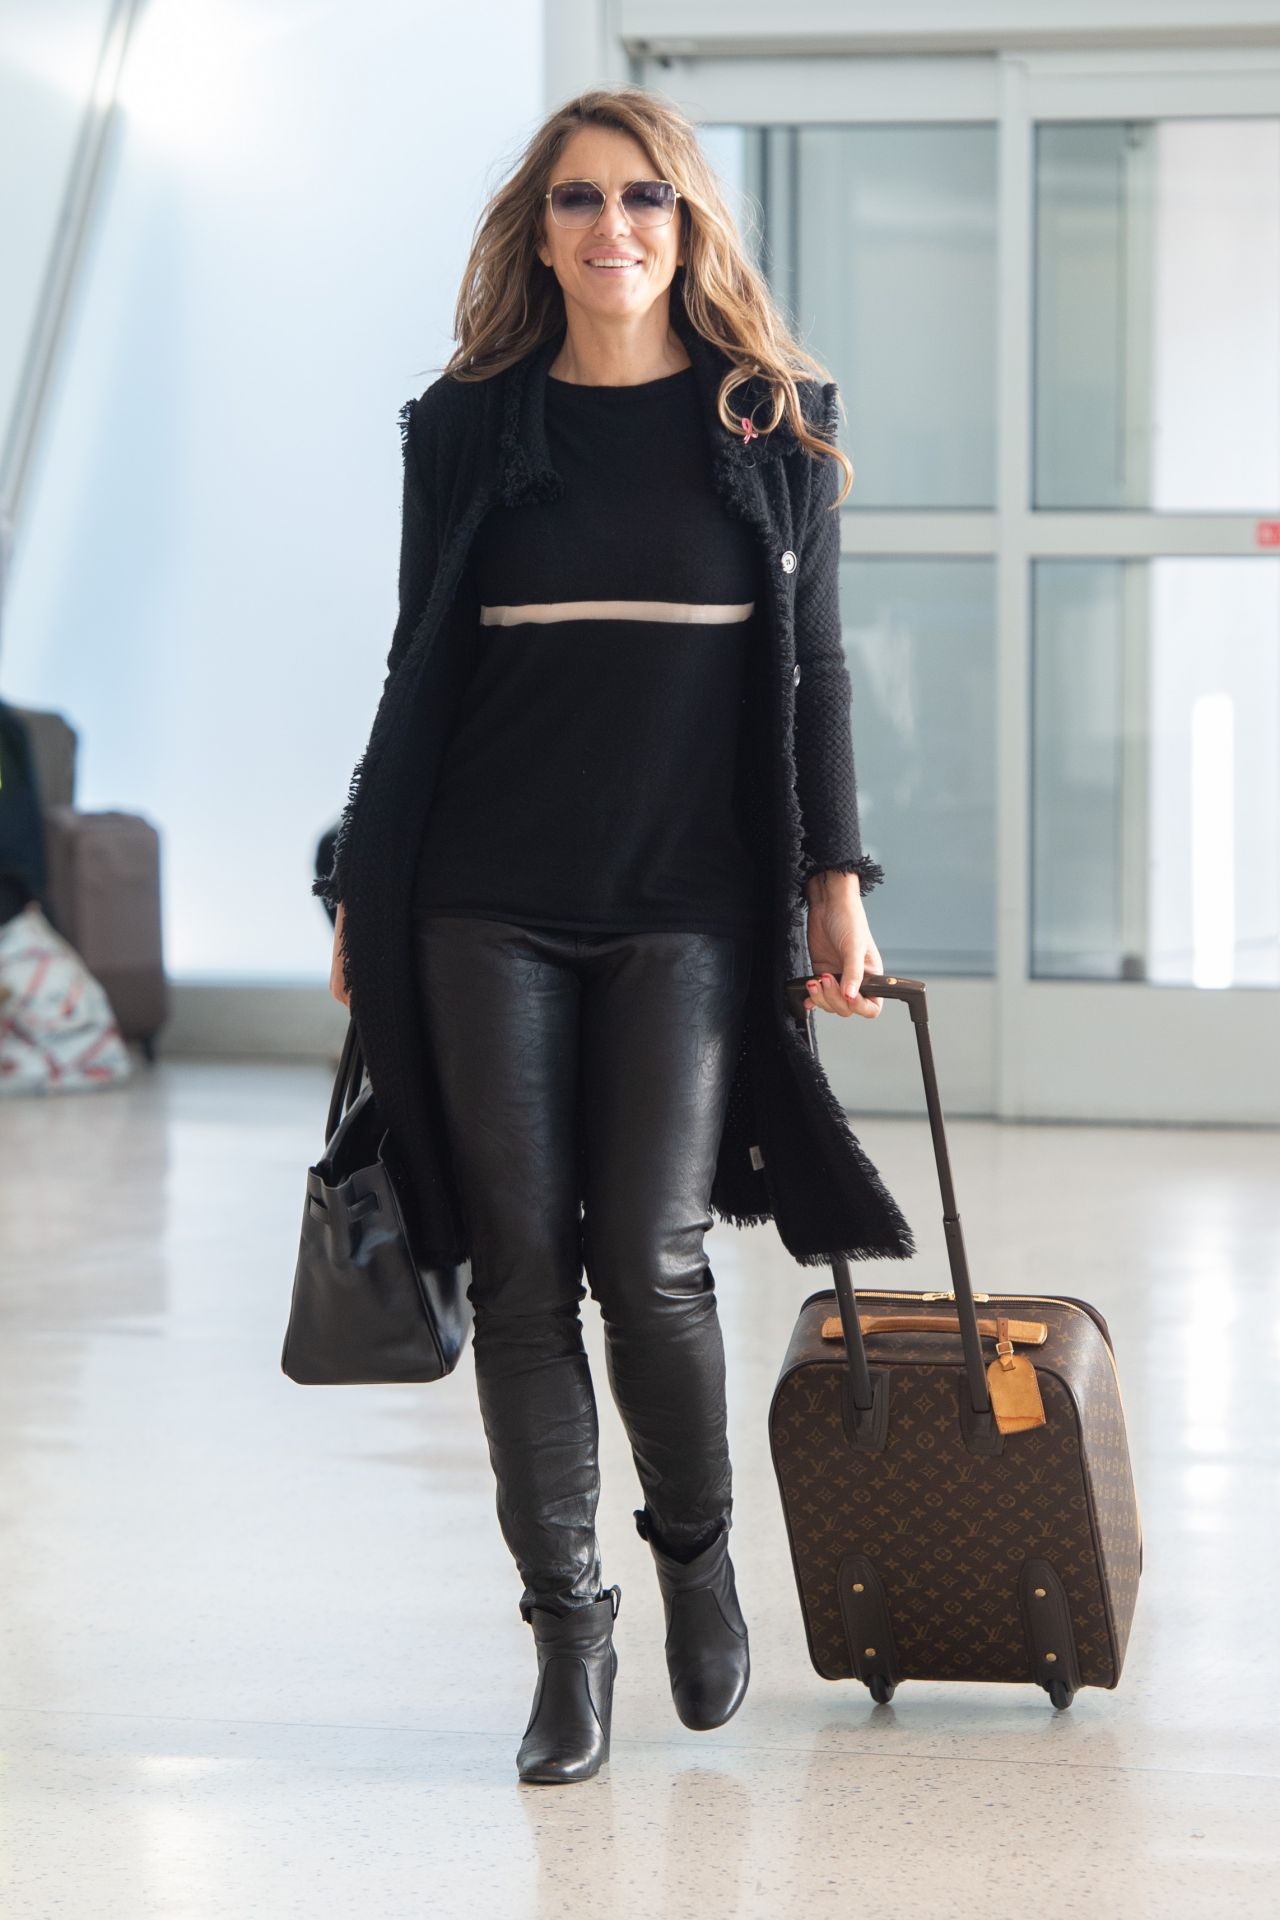 Elizabeth Hurley Arrives At Jfk Airport 10 12 2018